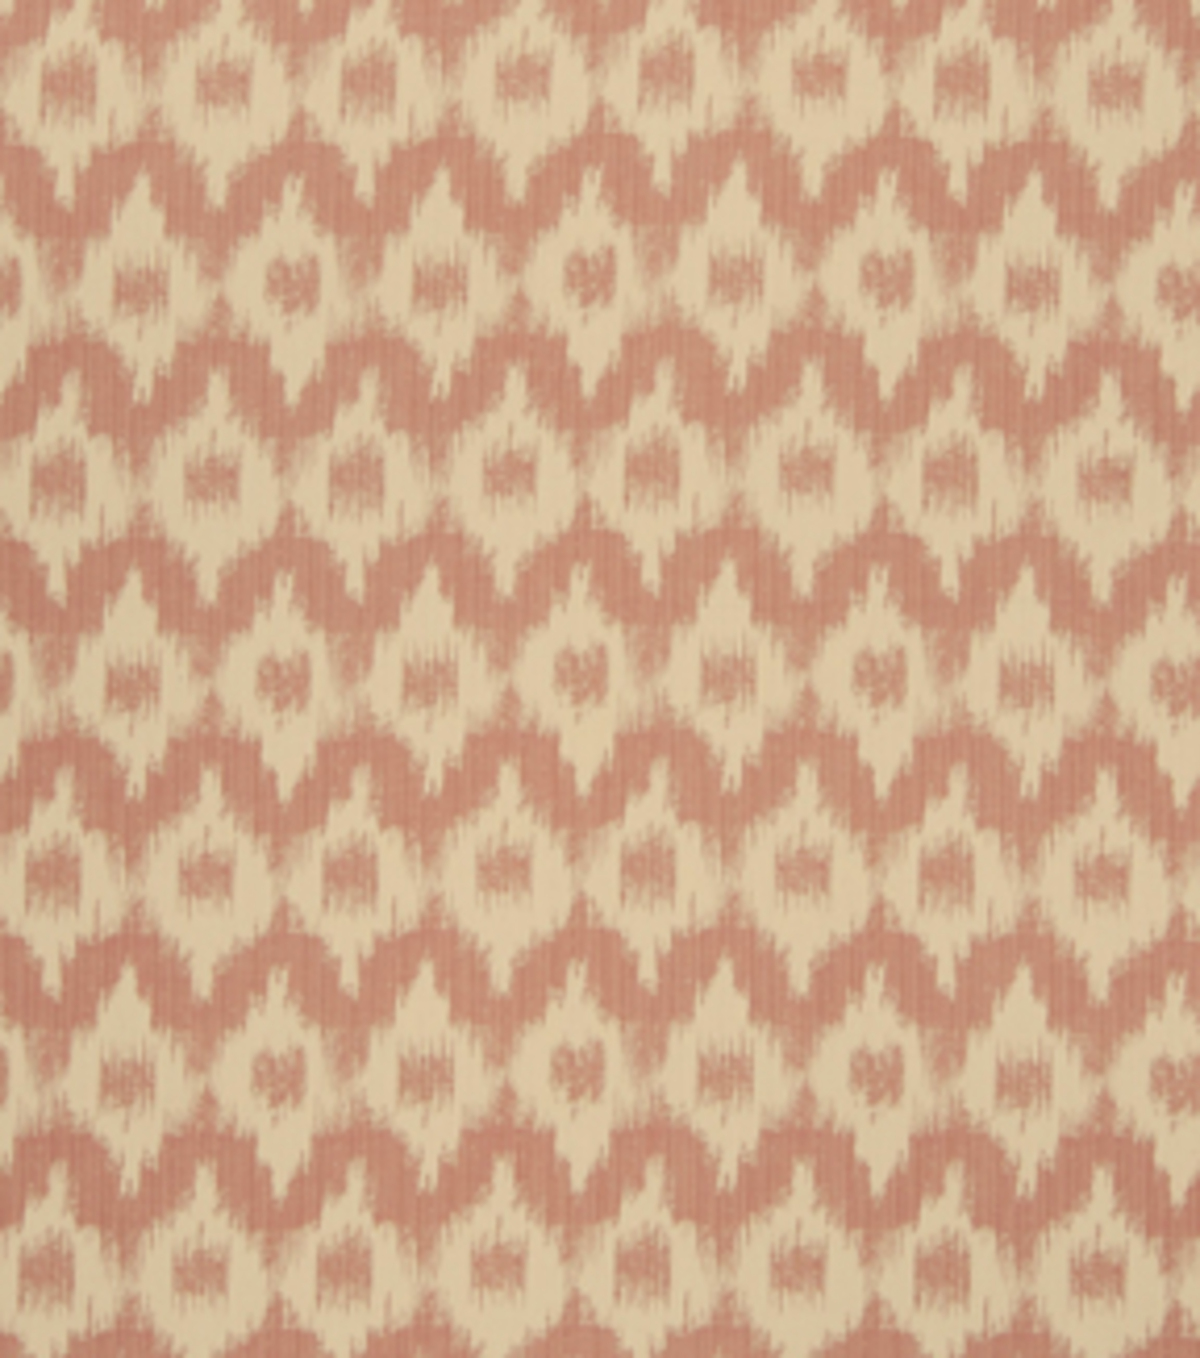 Home Decor 8\u0022x8\u0022 Fabric Swatch-French General Cecilia Rose